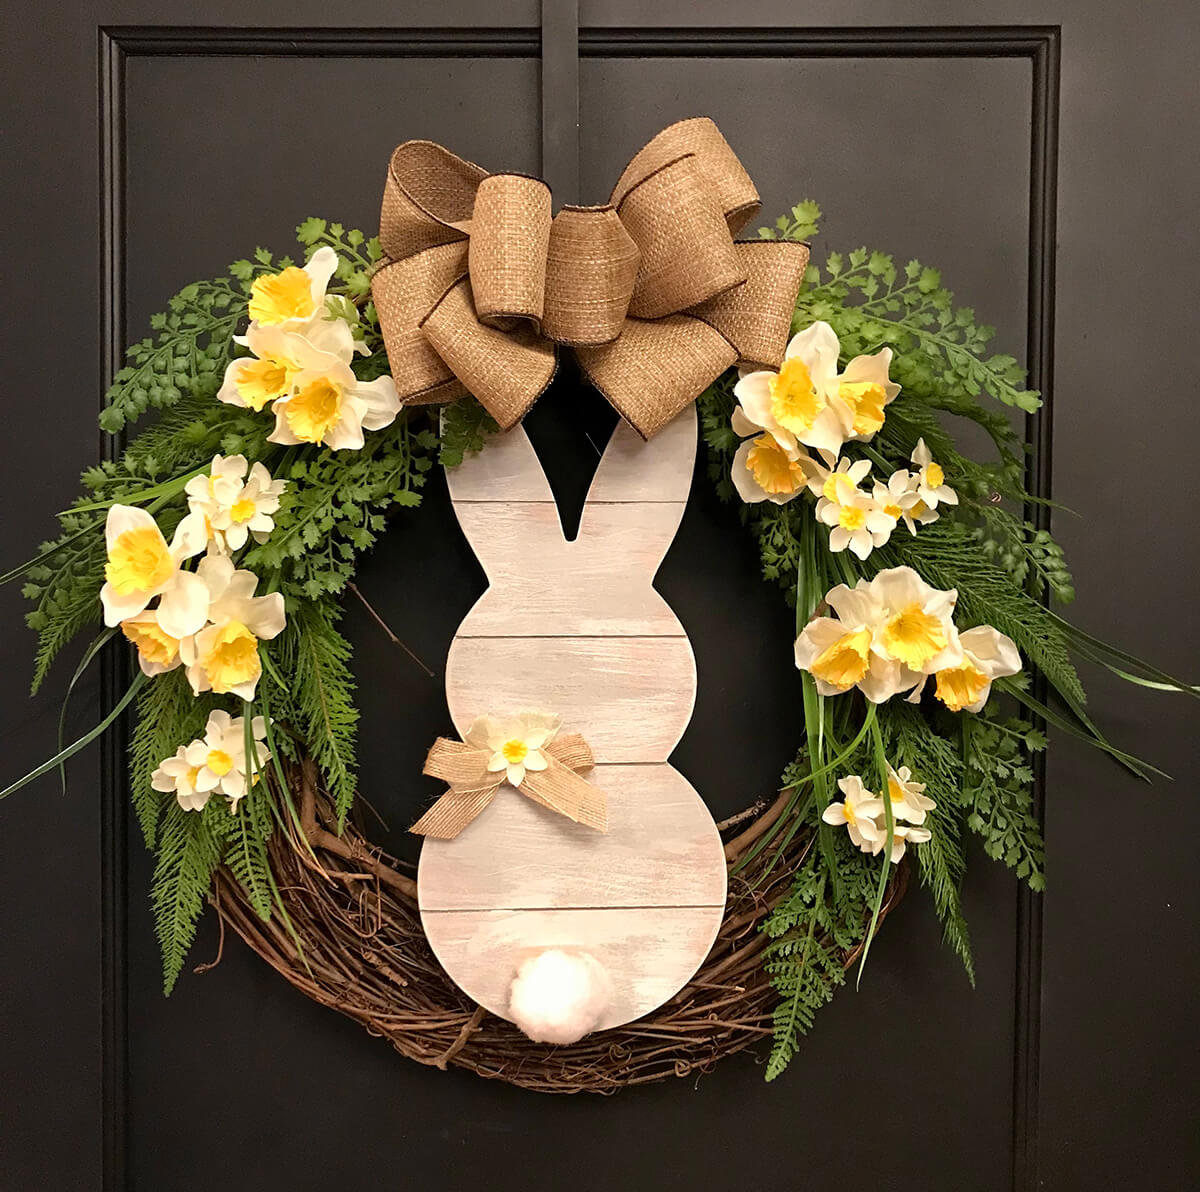 Wood Bunny with Daffodils and Bow Vine Wreath